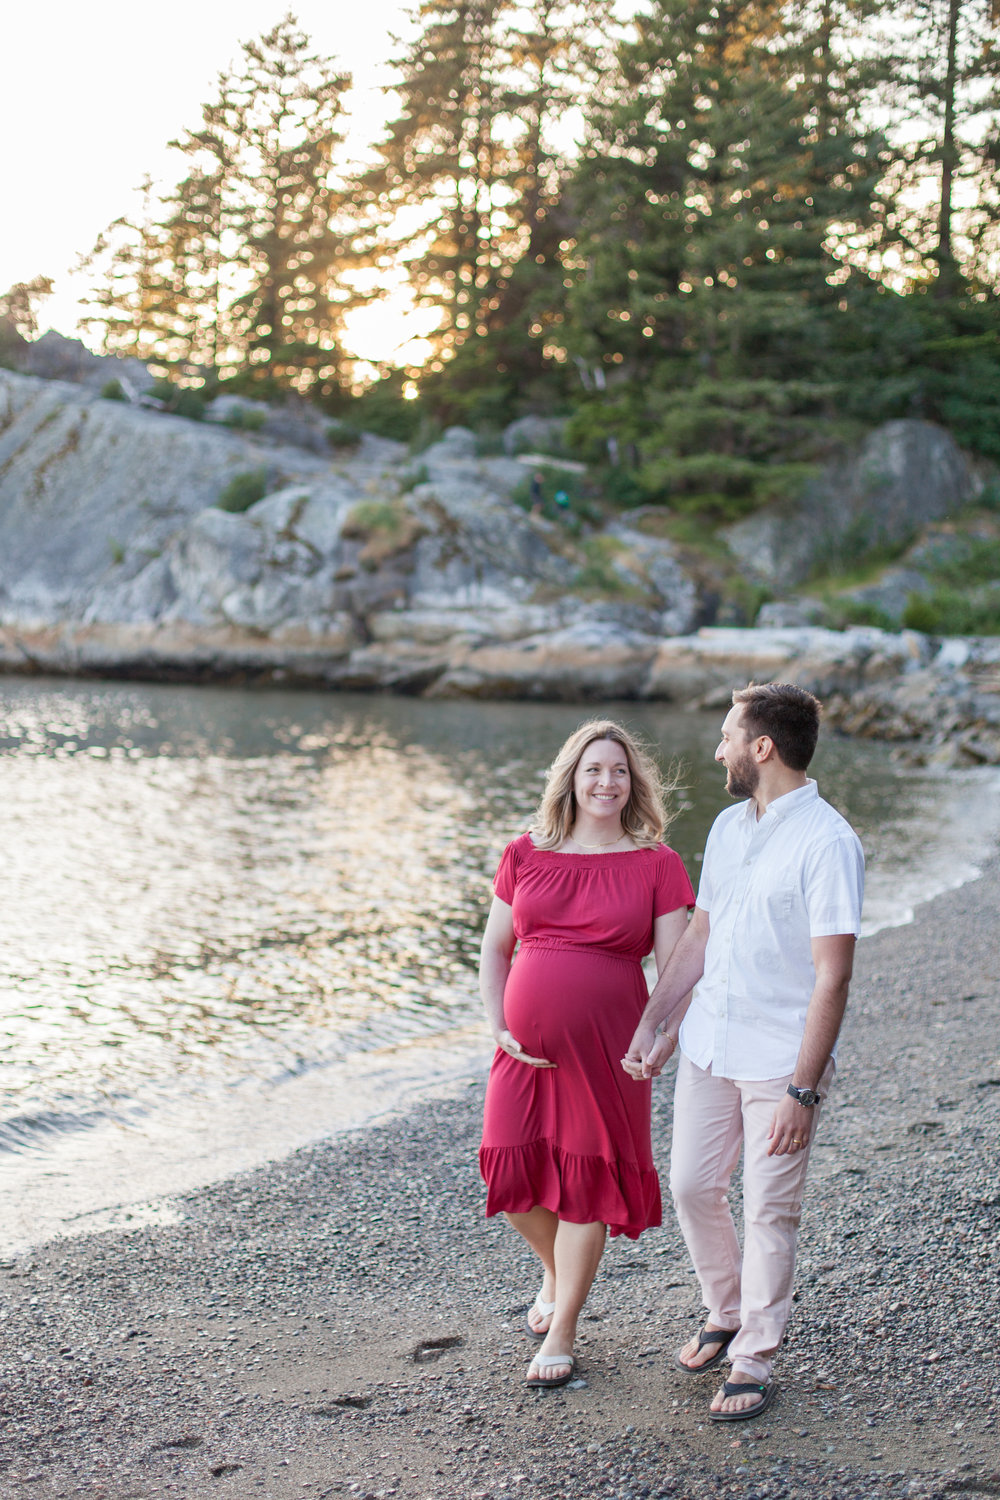 Whytecliff Park Maternity Photos-11.jpg